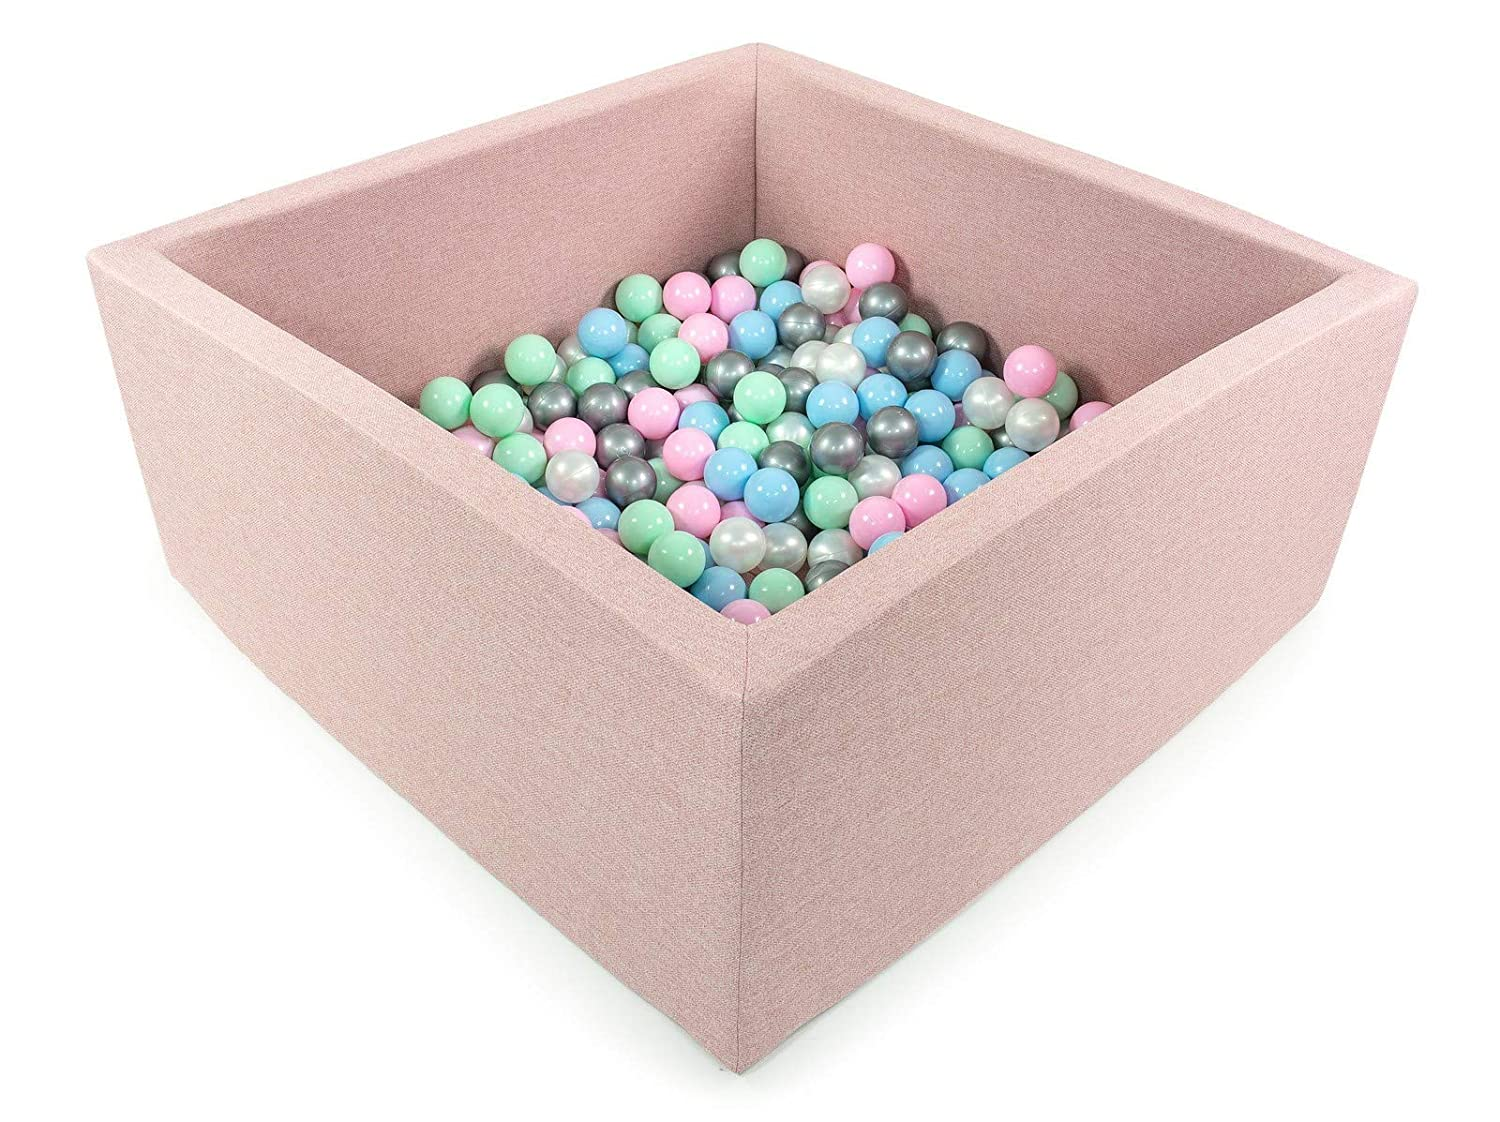 Tweepsy Soft Baby Kids Toddler Play Ball Square Pool Pit Toys 250 Balls 90x90x40cm Handmade EU - BKWZ1